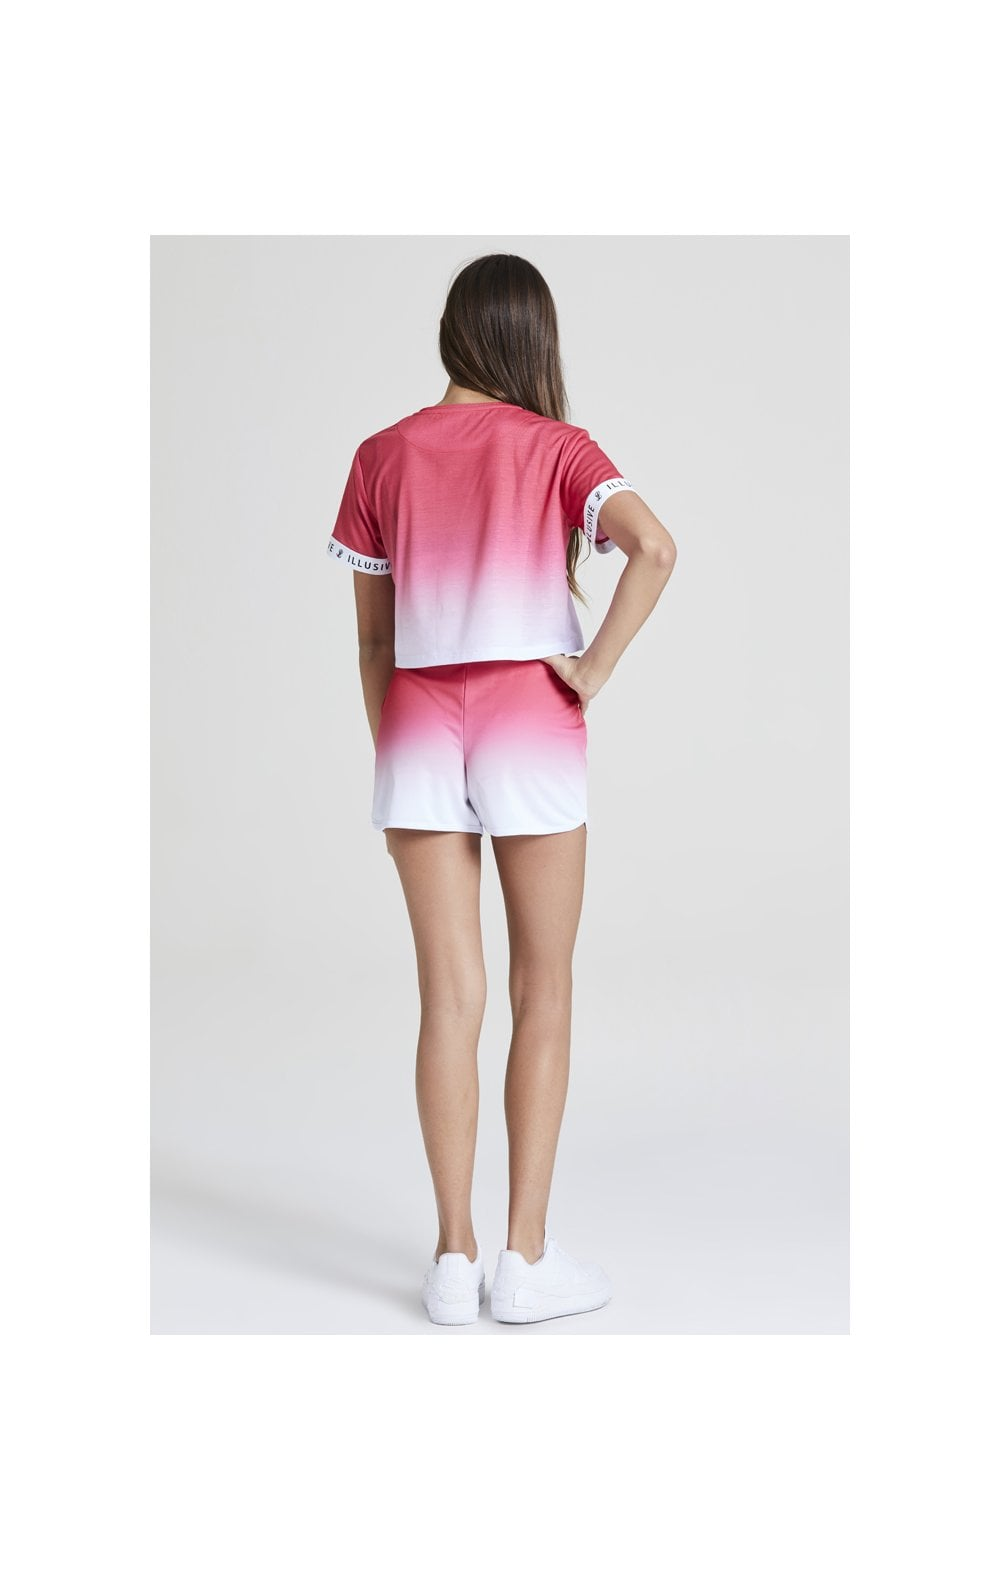 Illusive London Pink Fade Croped Tee - Pink & White (4)